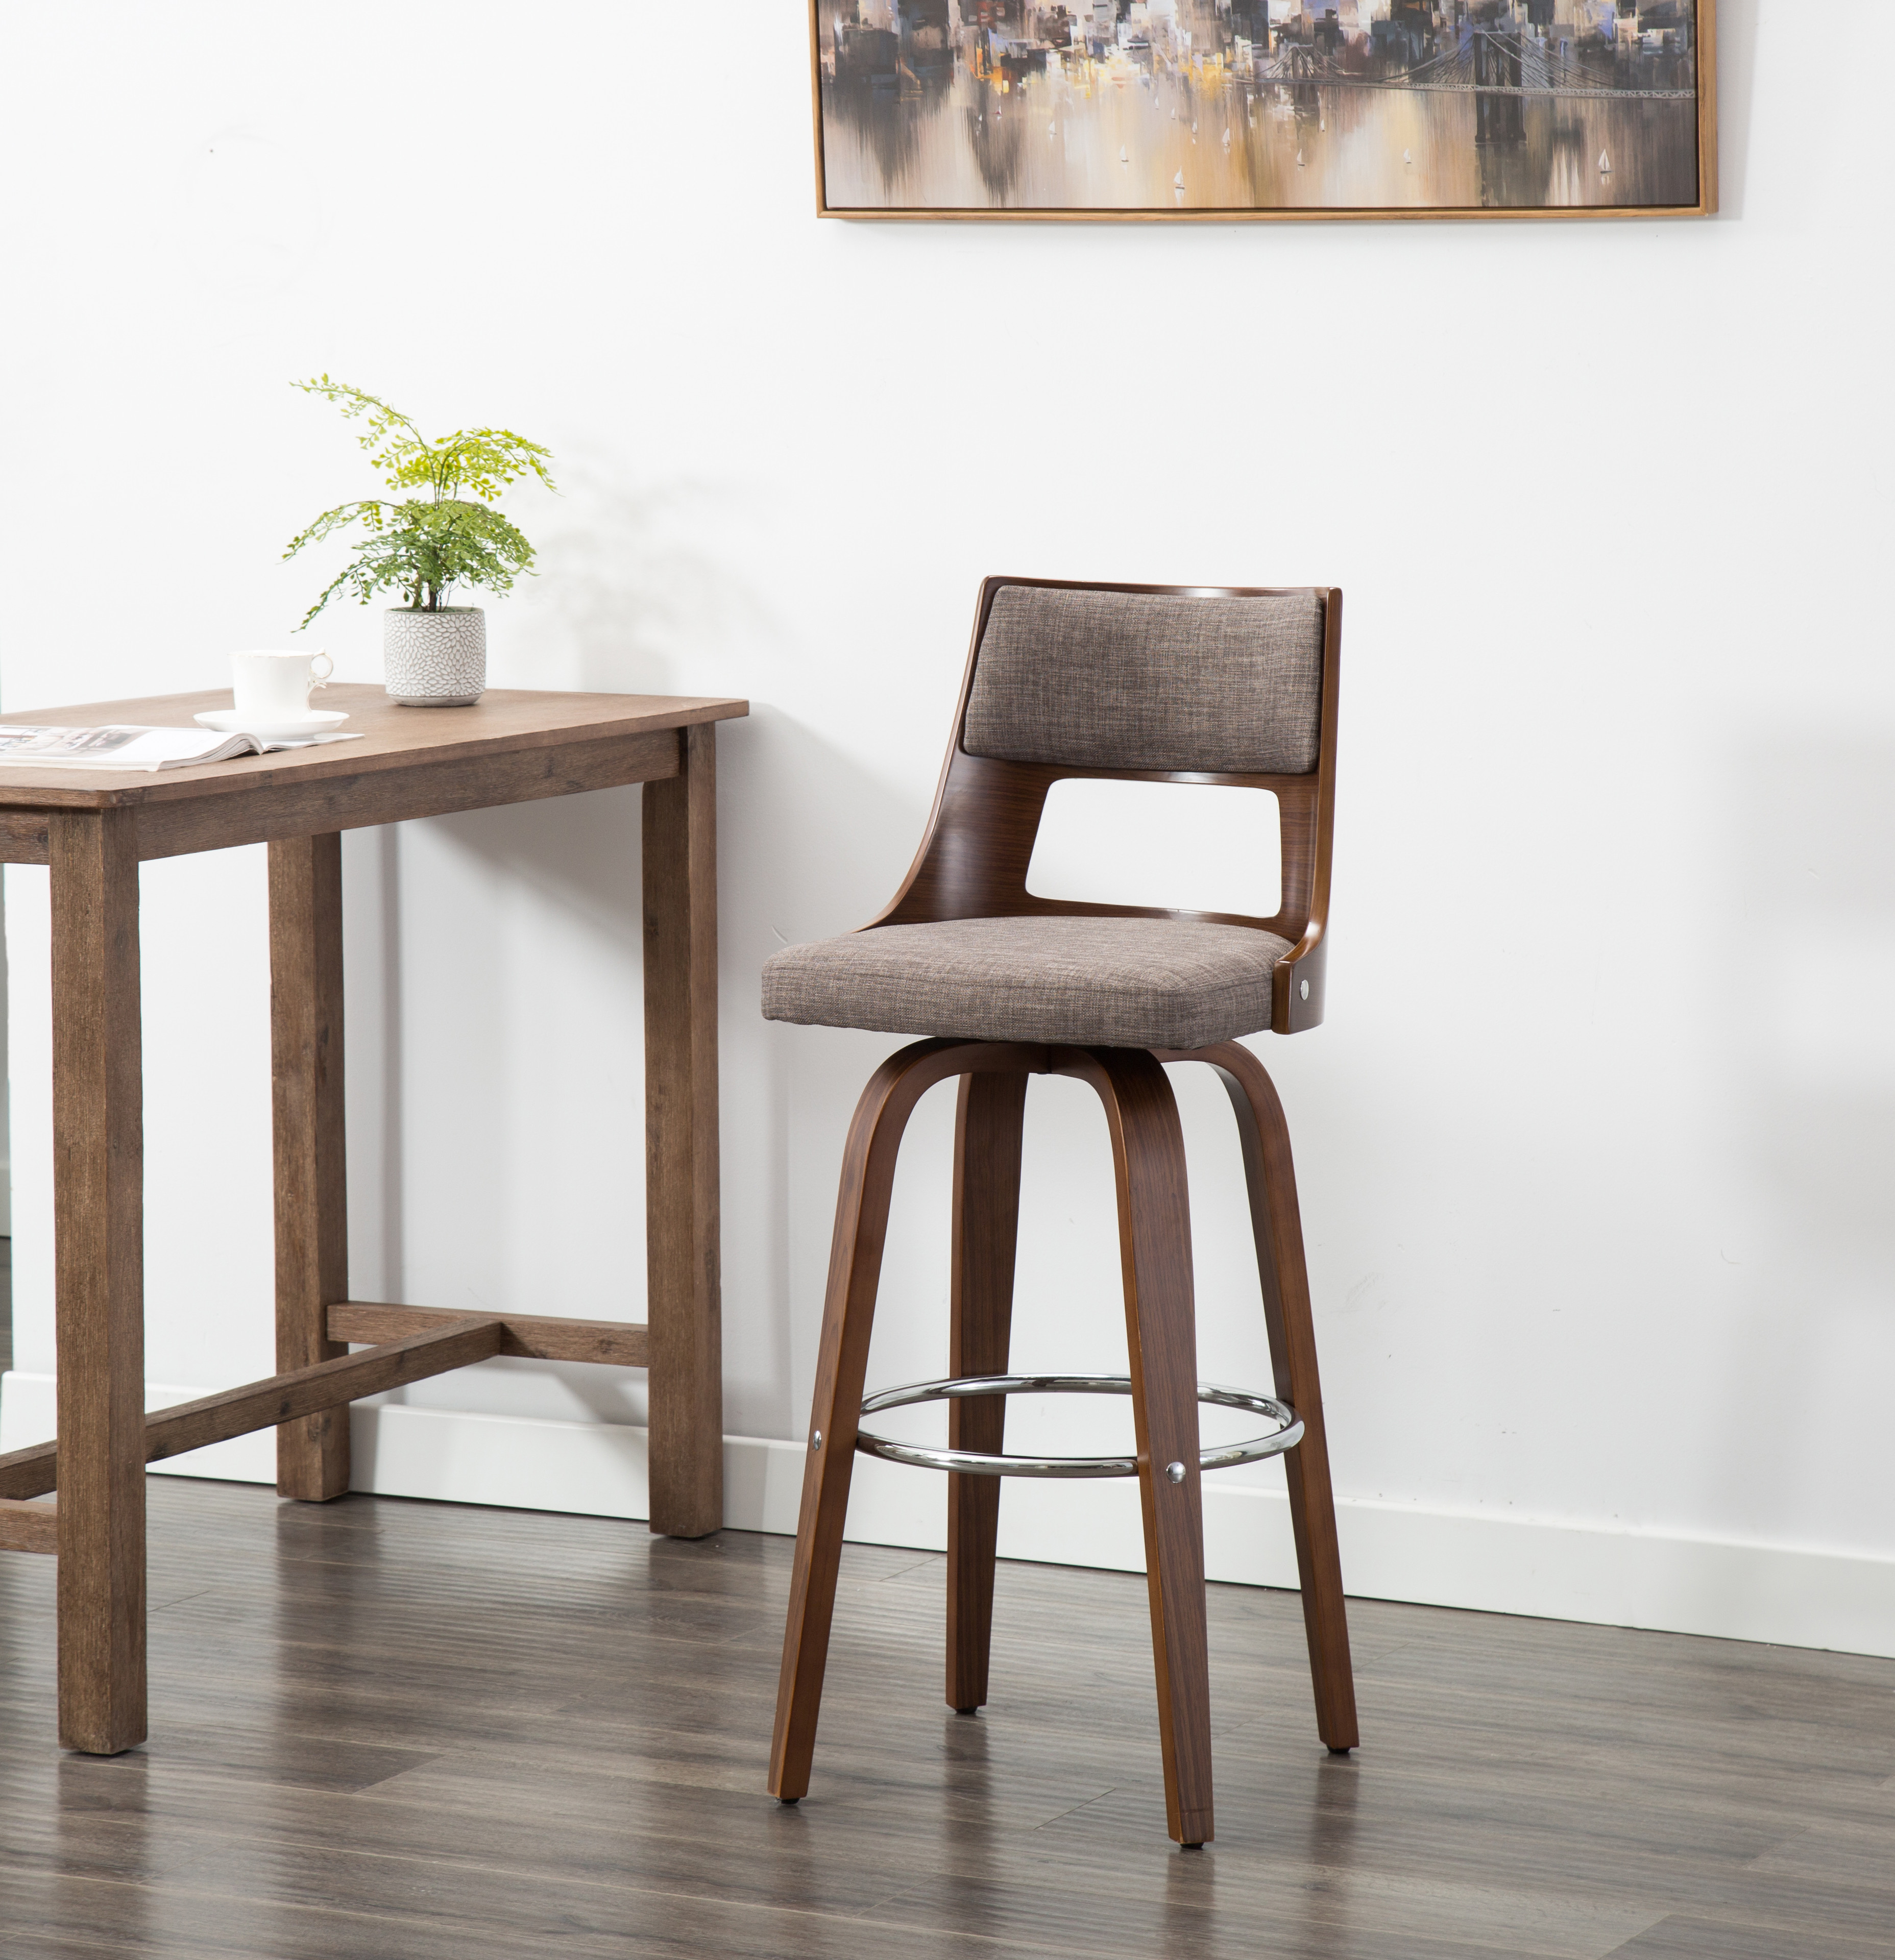 Porthos Home Piers Wood Bar Stools With Beech Wood Legs And Back Fabric Upholstery And Metal Footrest Suitable For Home And Office Bars Walmart Com Walmart Com